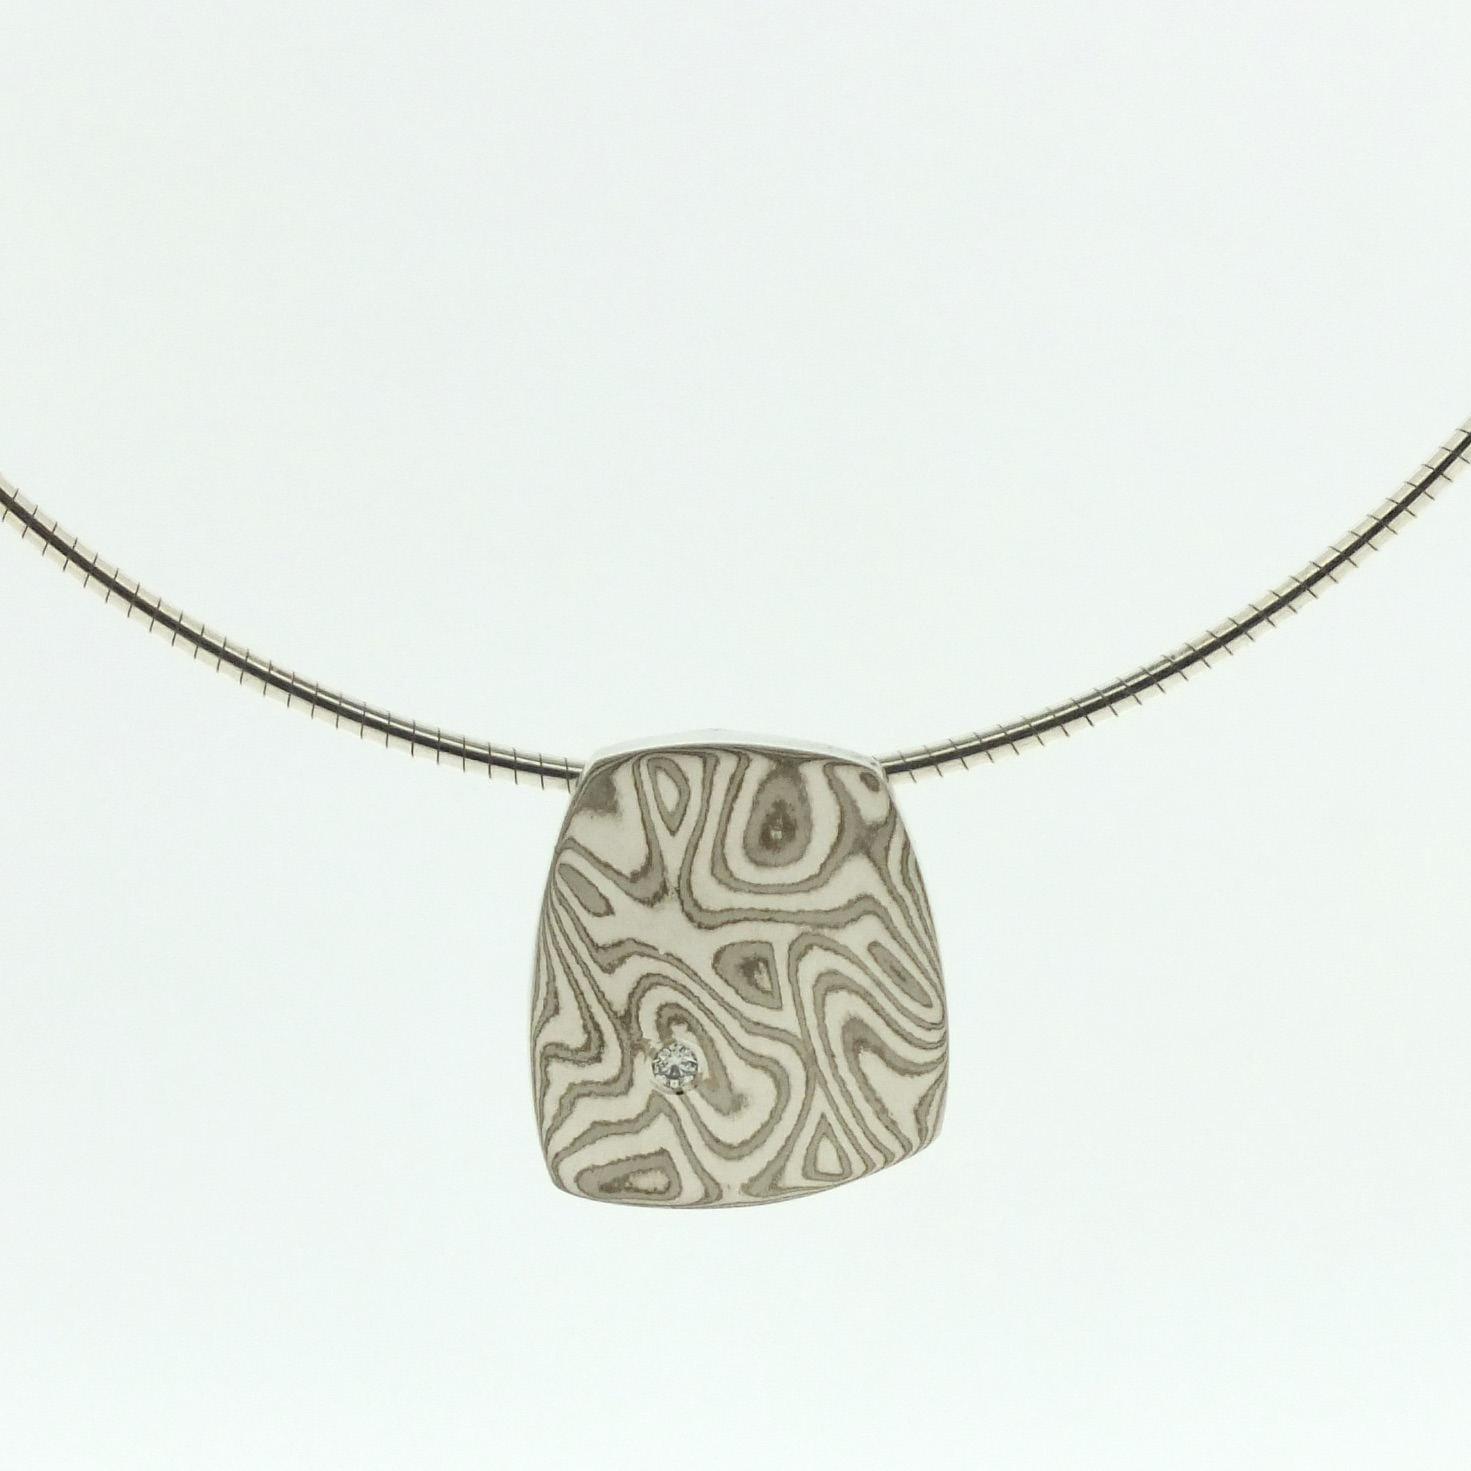 18k white gold and silver mokume gane small Fower Neukit pendant with diamond detail